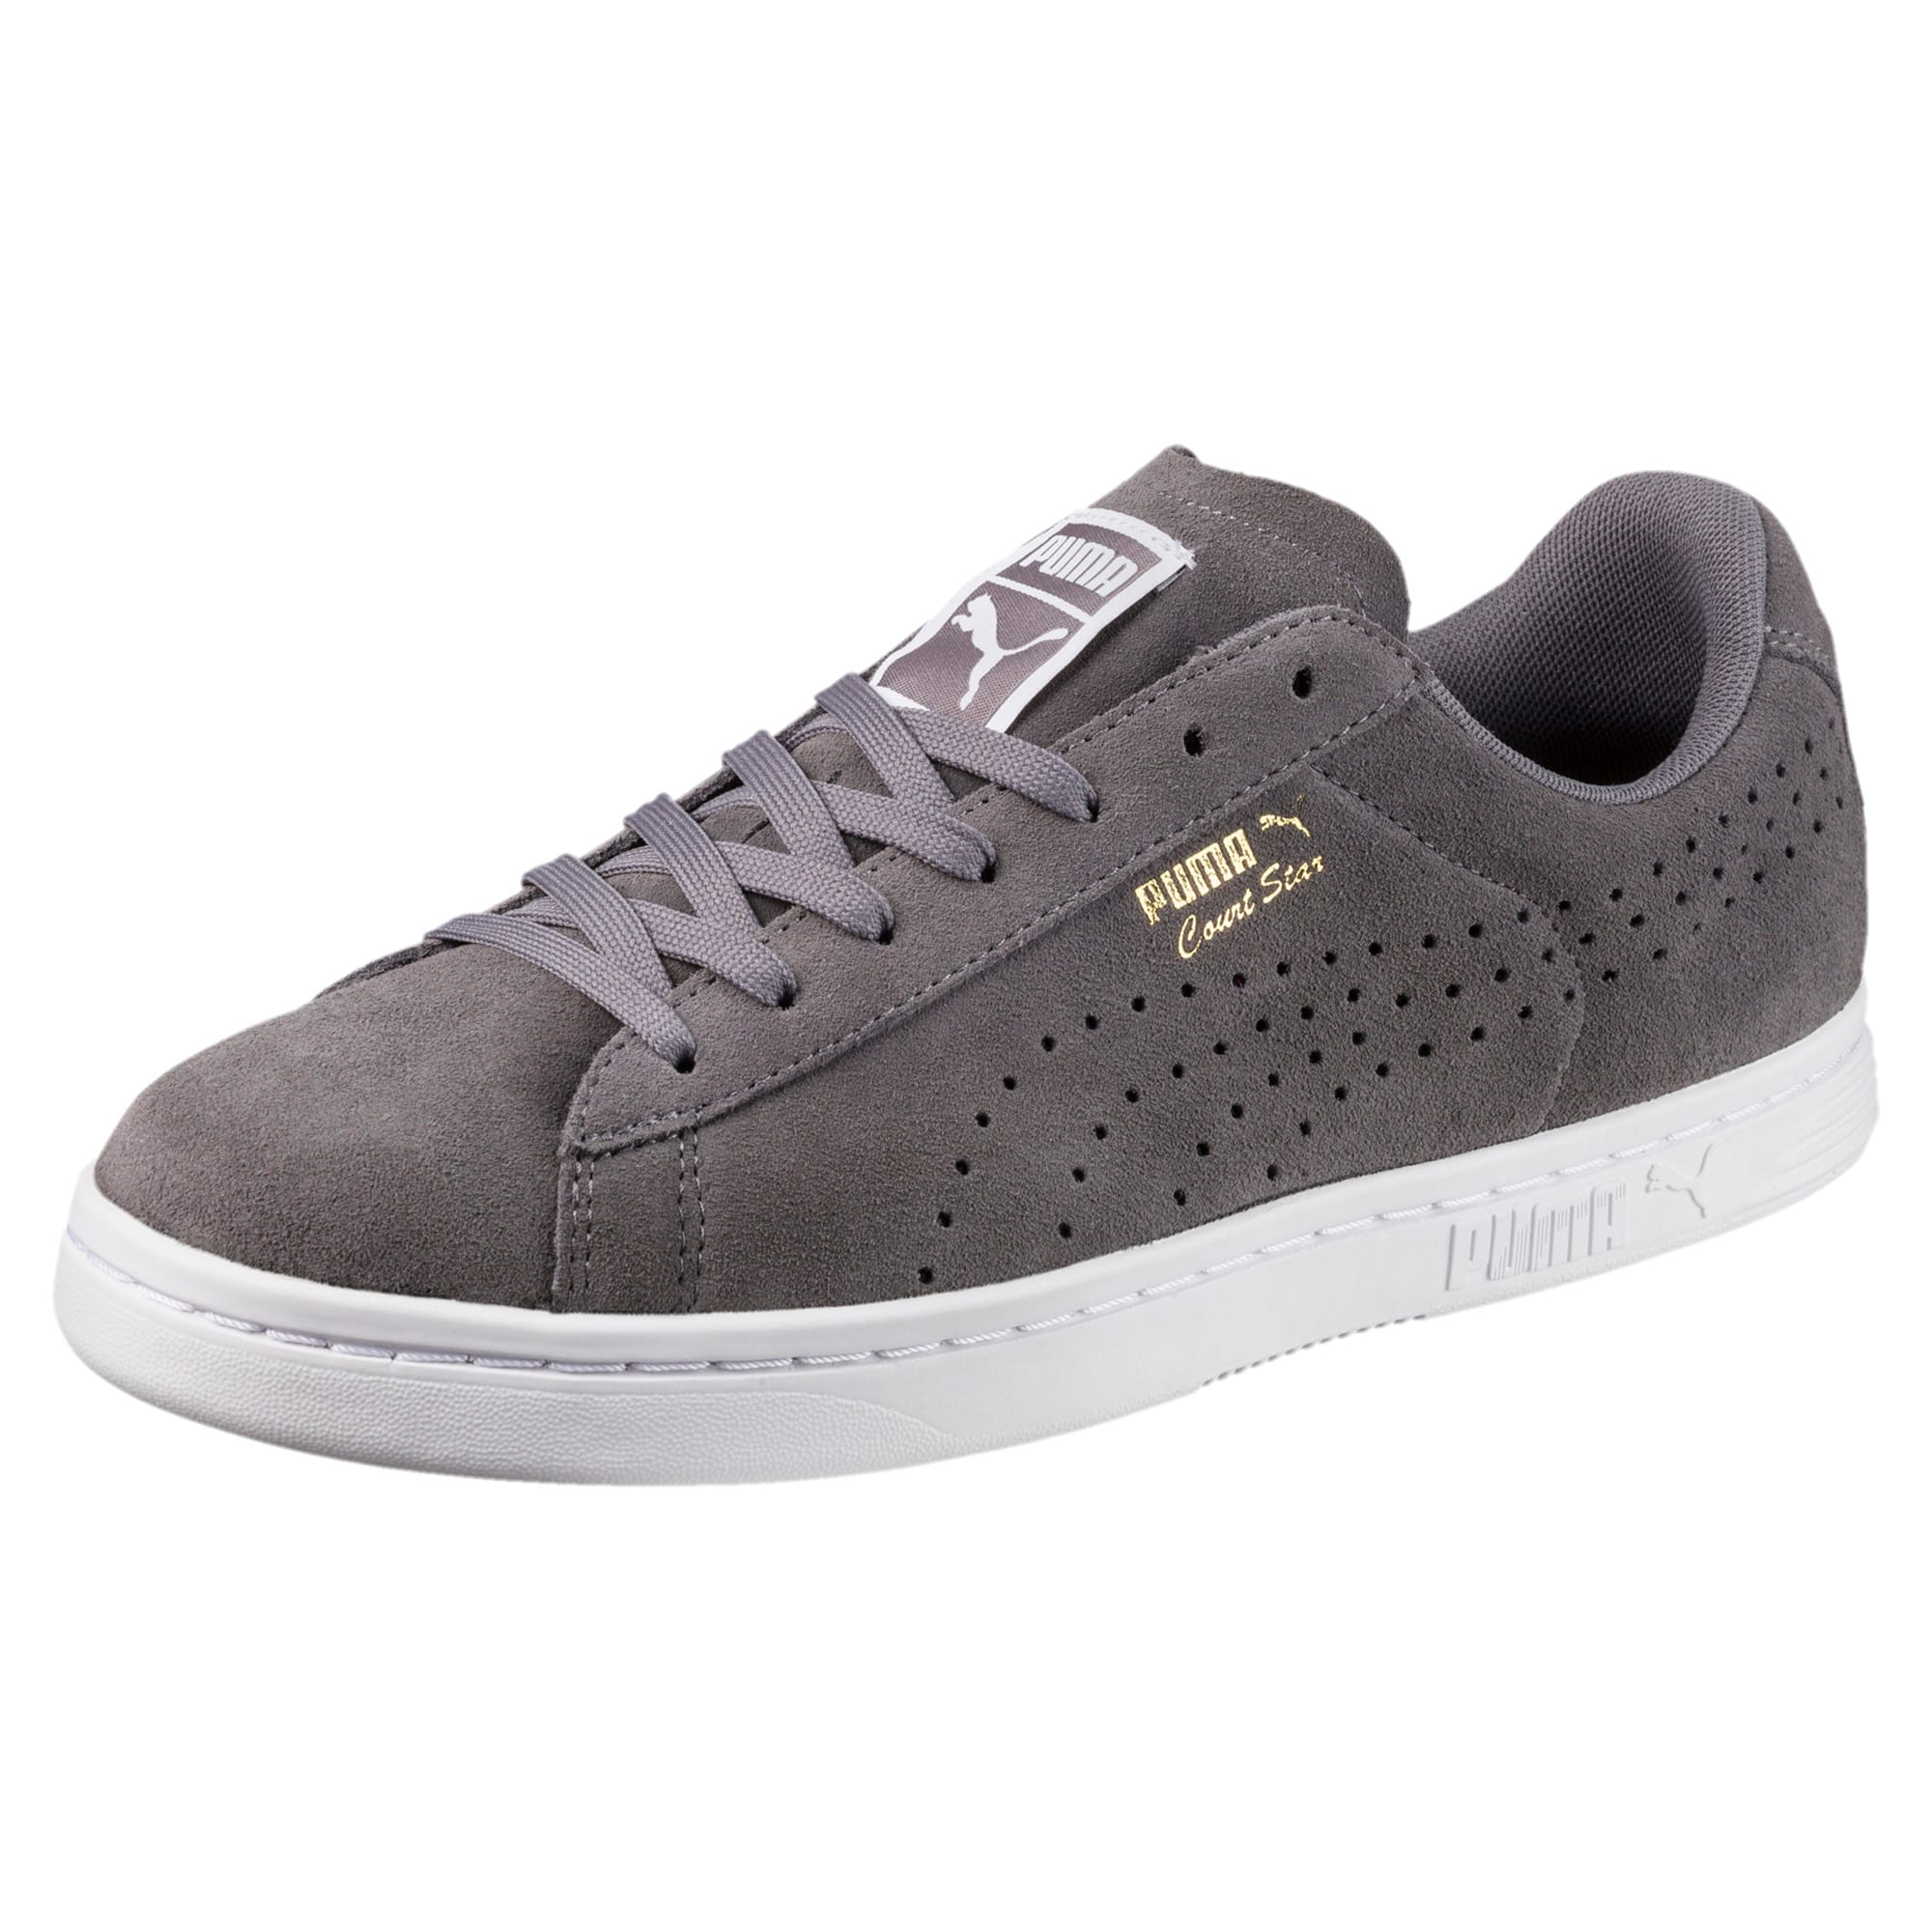 Thumbnail 1 of Court Star Suede Sneakers, QUIET SHADE, medium